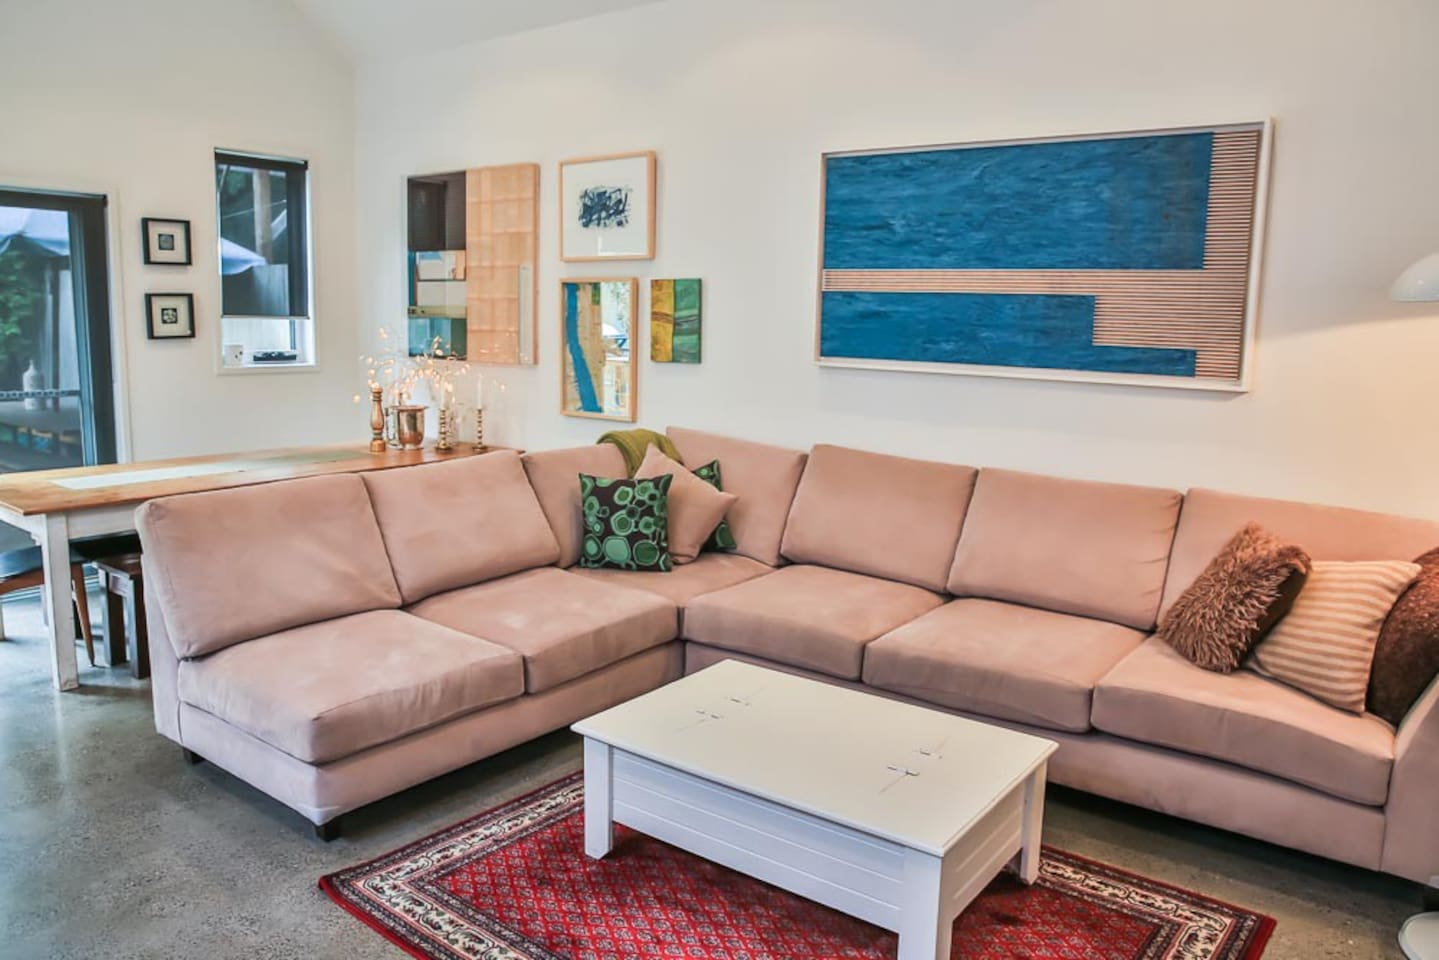 Bright, modern house in Annandale